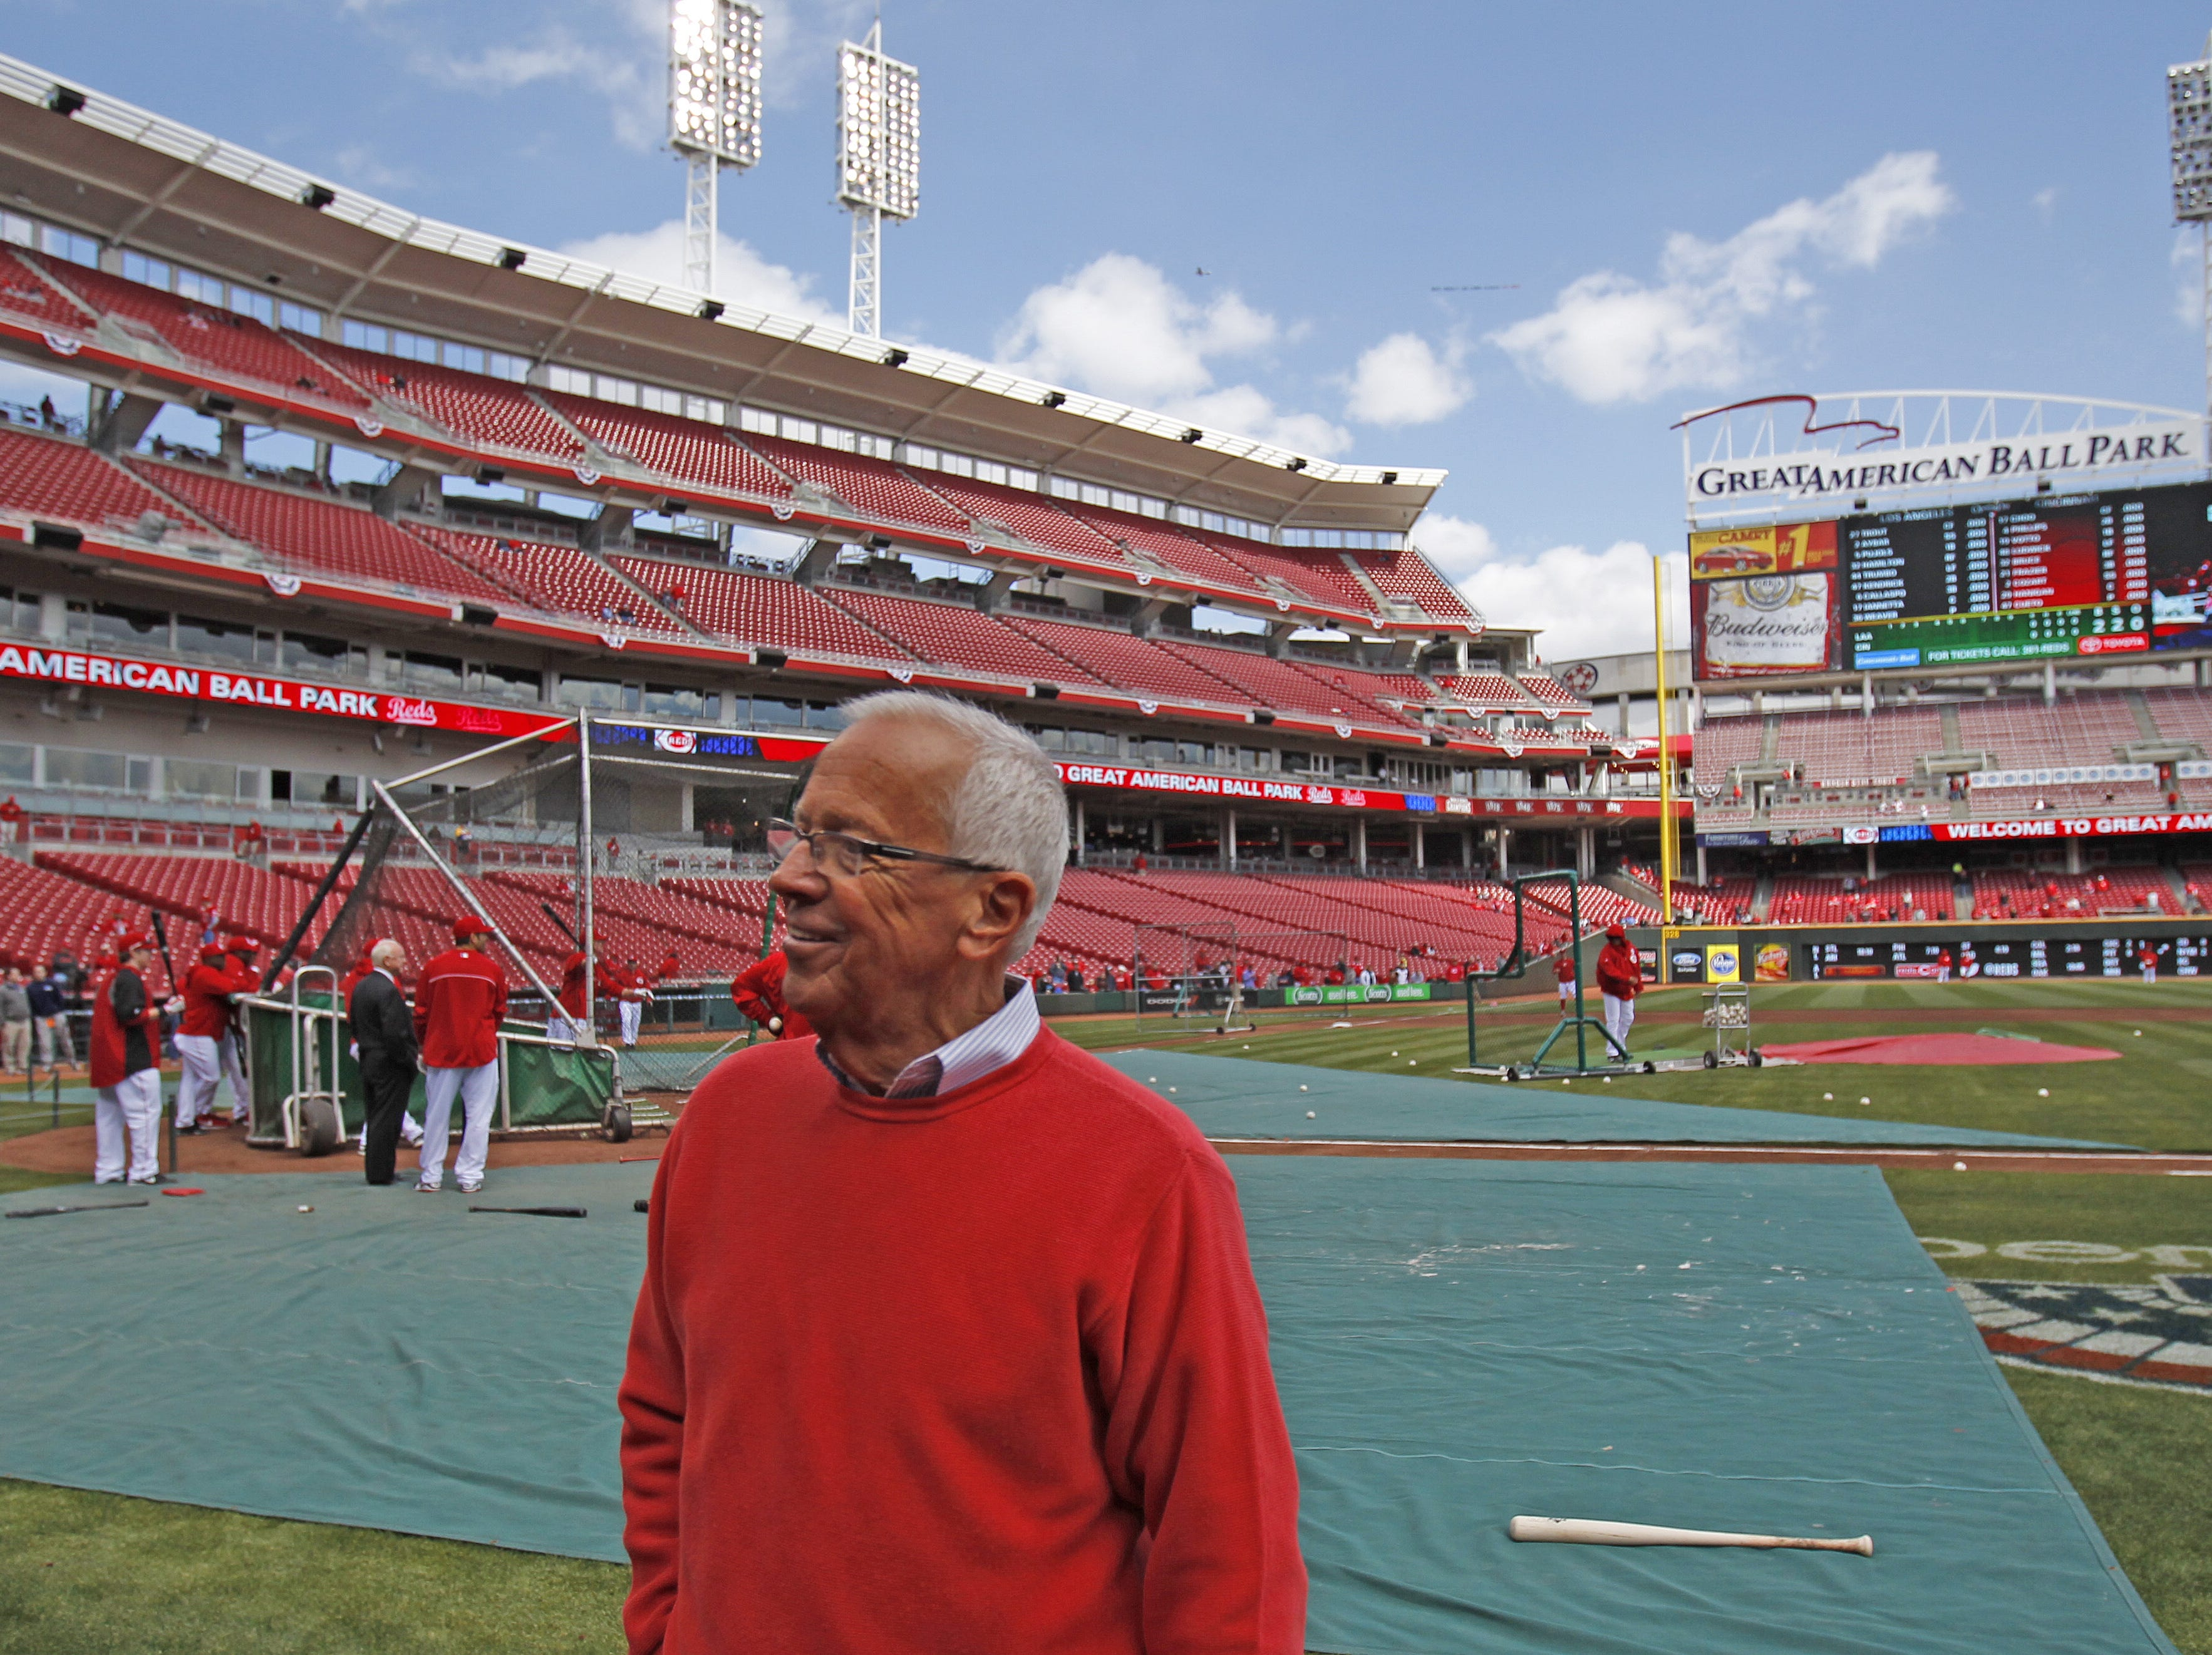 Reds-Angels. Cincinnati Reds Radio broadcaster Marty Brennaman will start his 40th season with the team during the Opening Day game played against the Los Angeles Angels at Great American Ball Park in Cincinnati, Ohio Monday April 1, 2013 .The Enquirer/Gary Landers